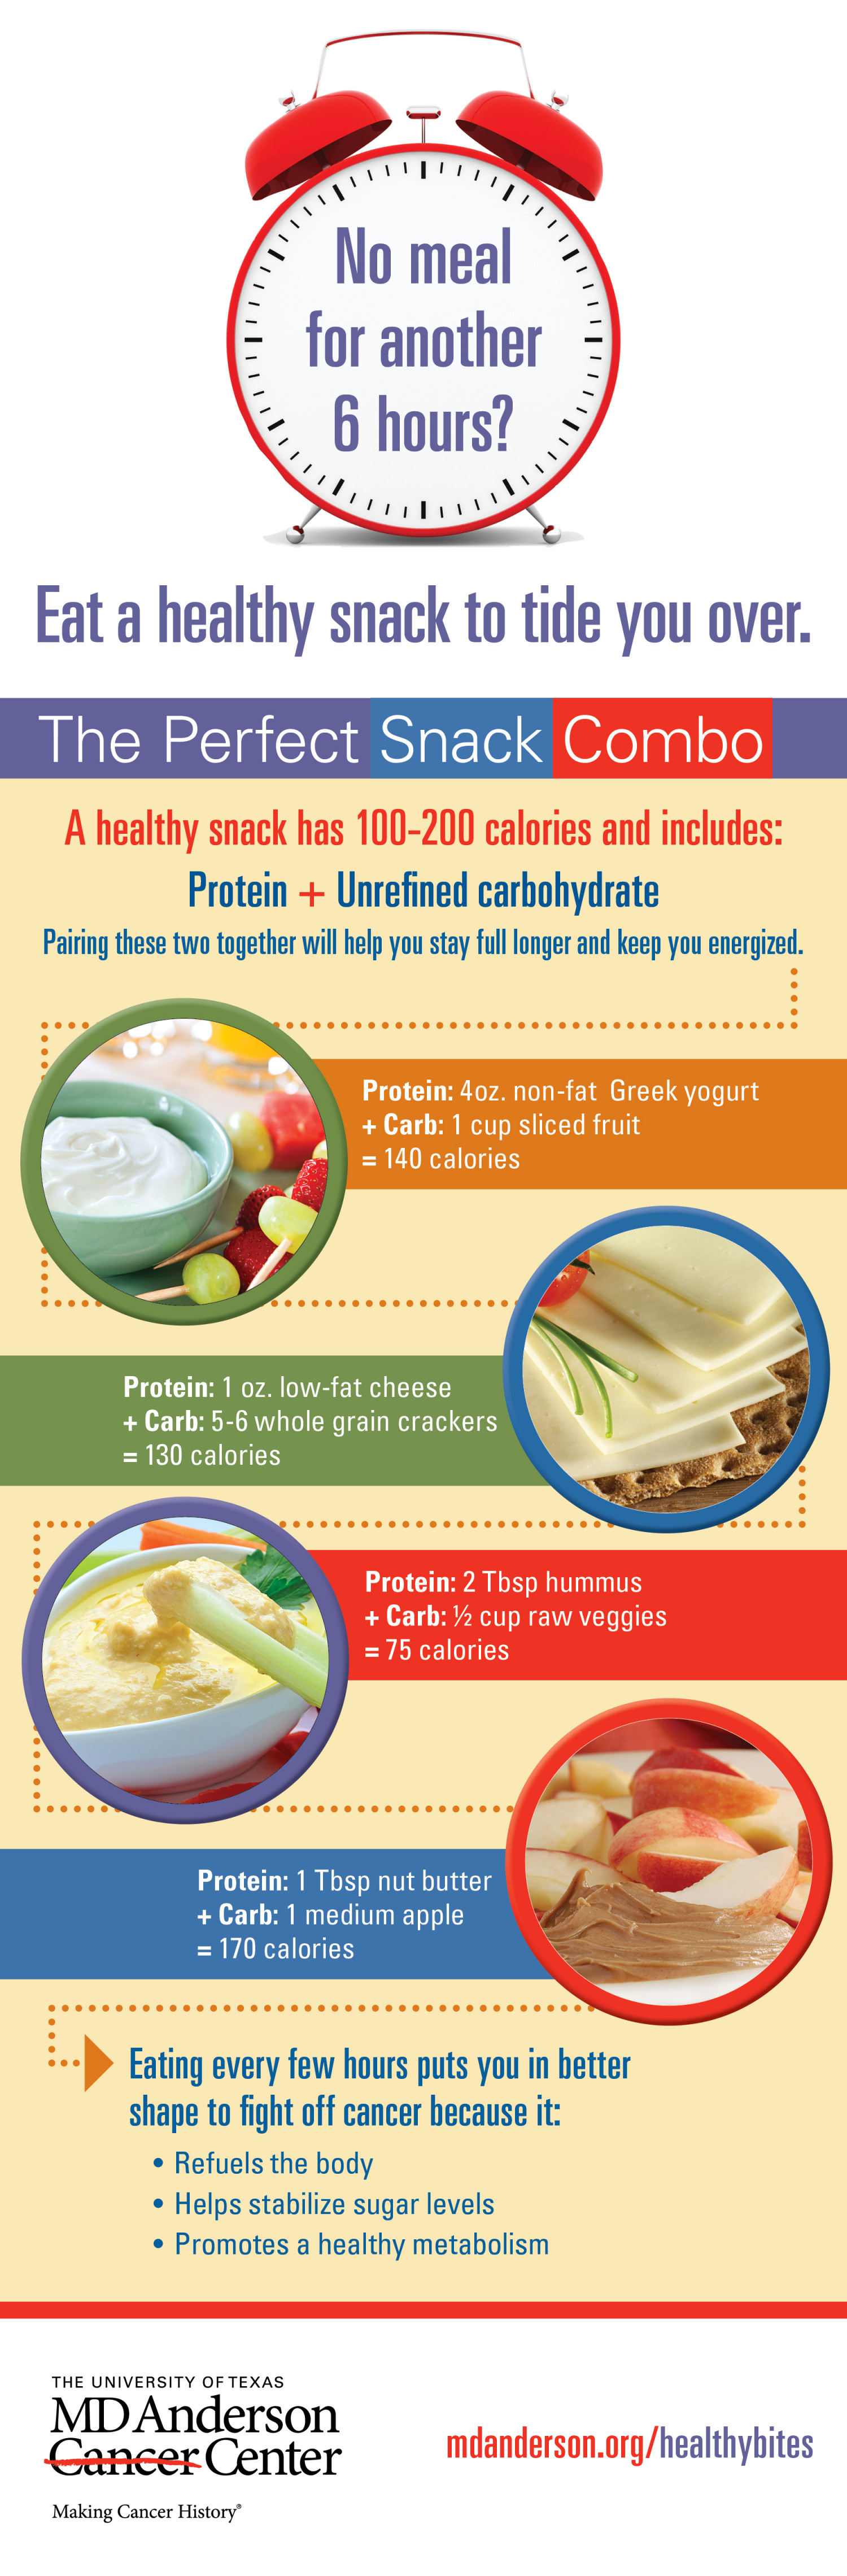 The Perfect Snack Combo Infographic